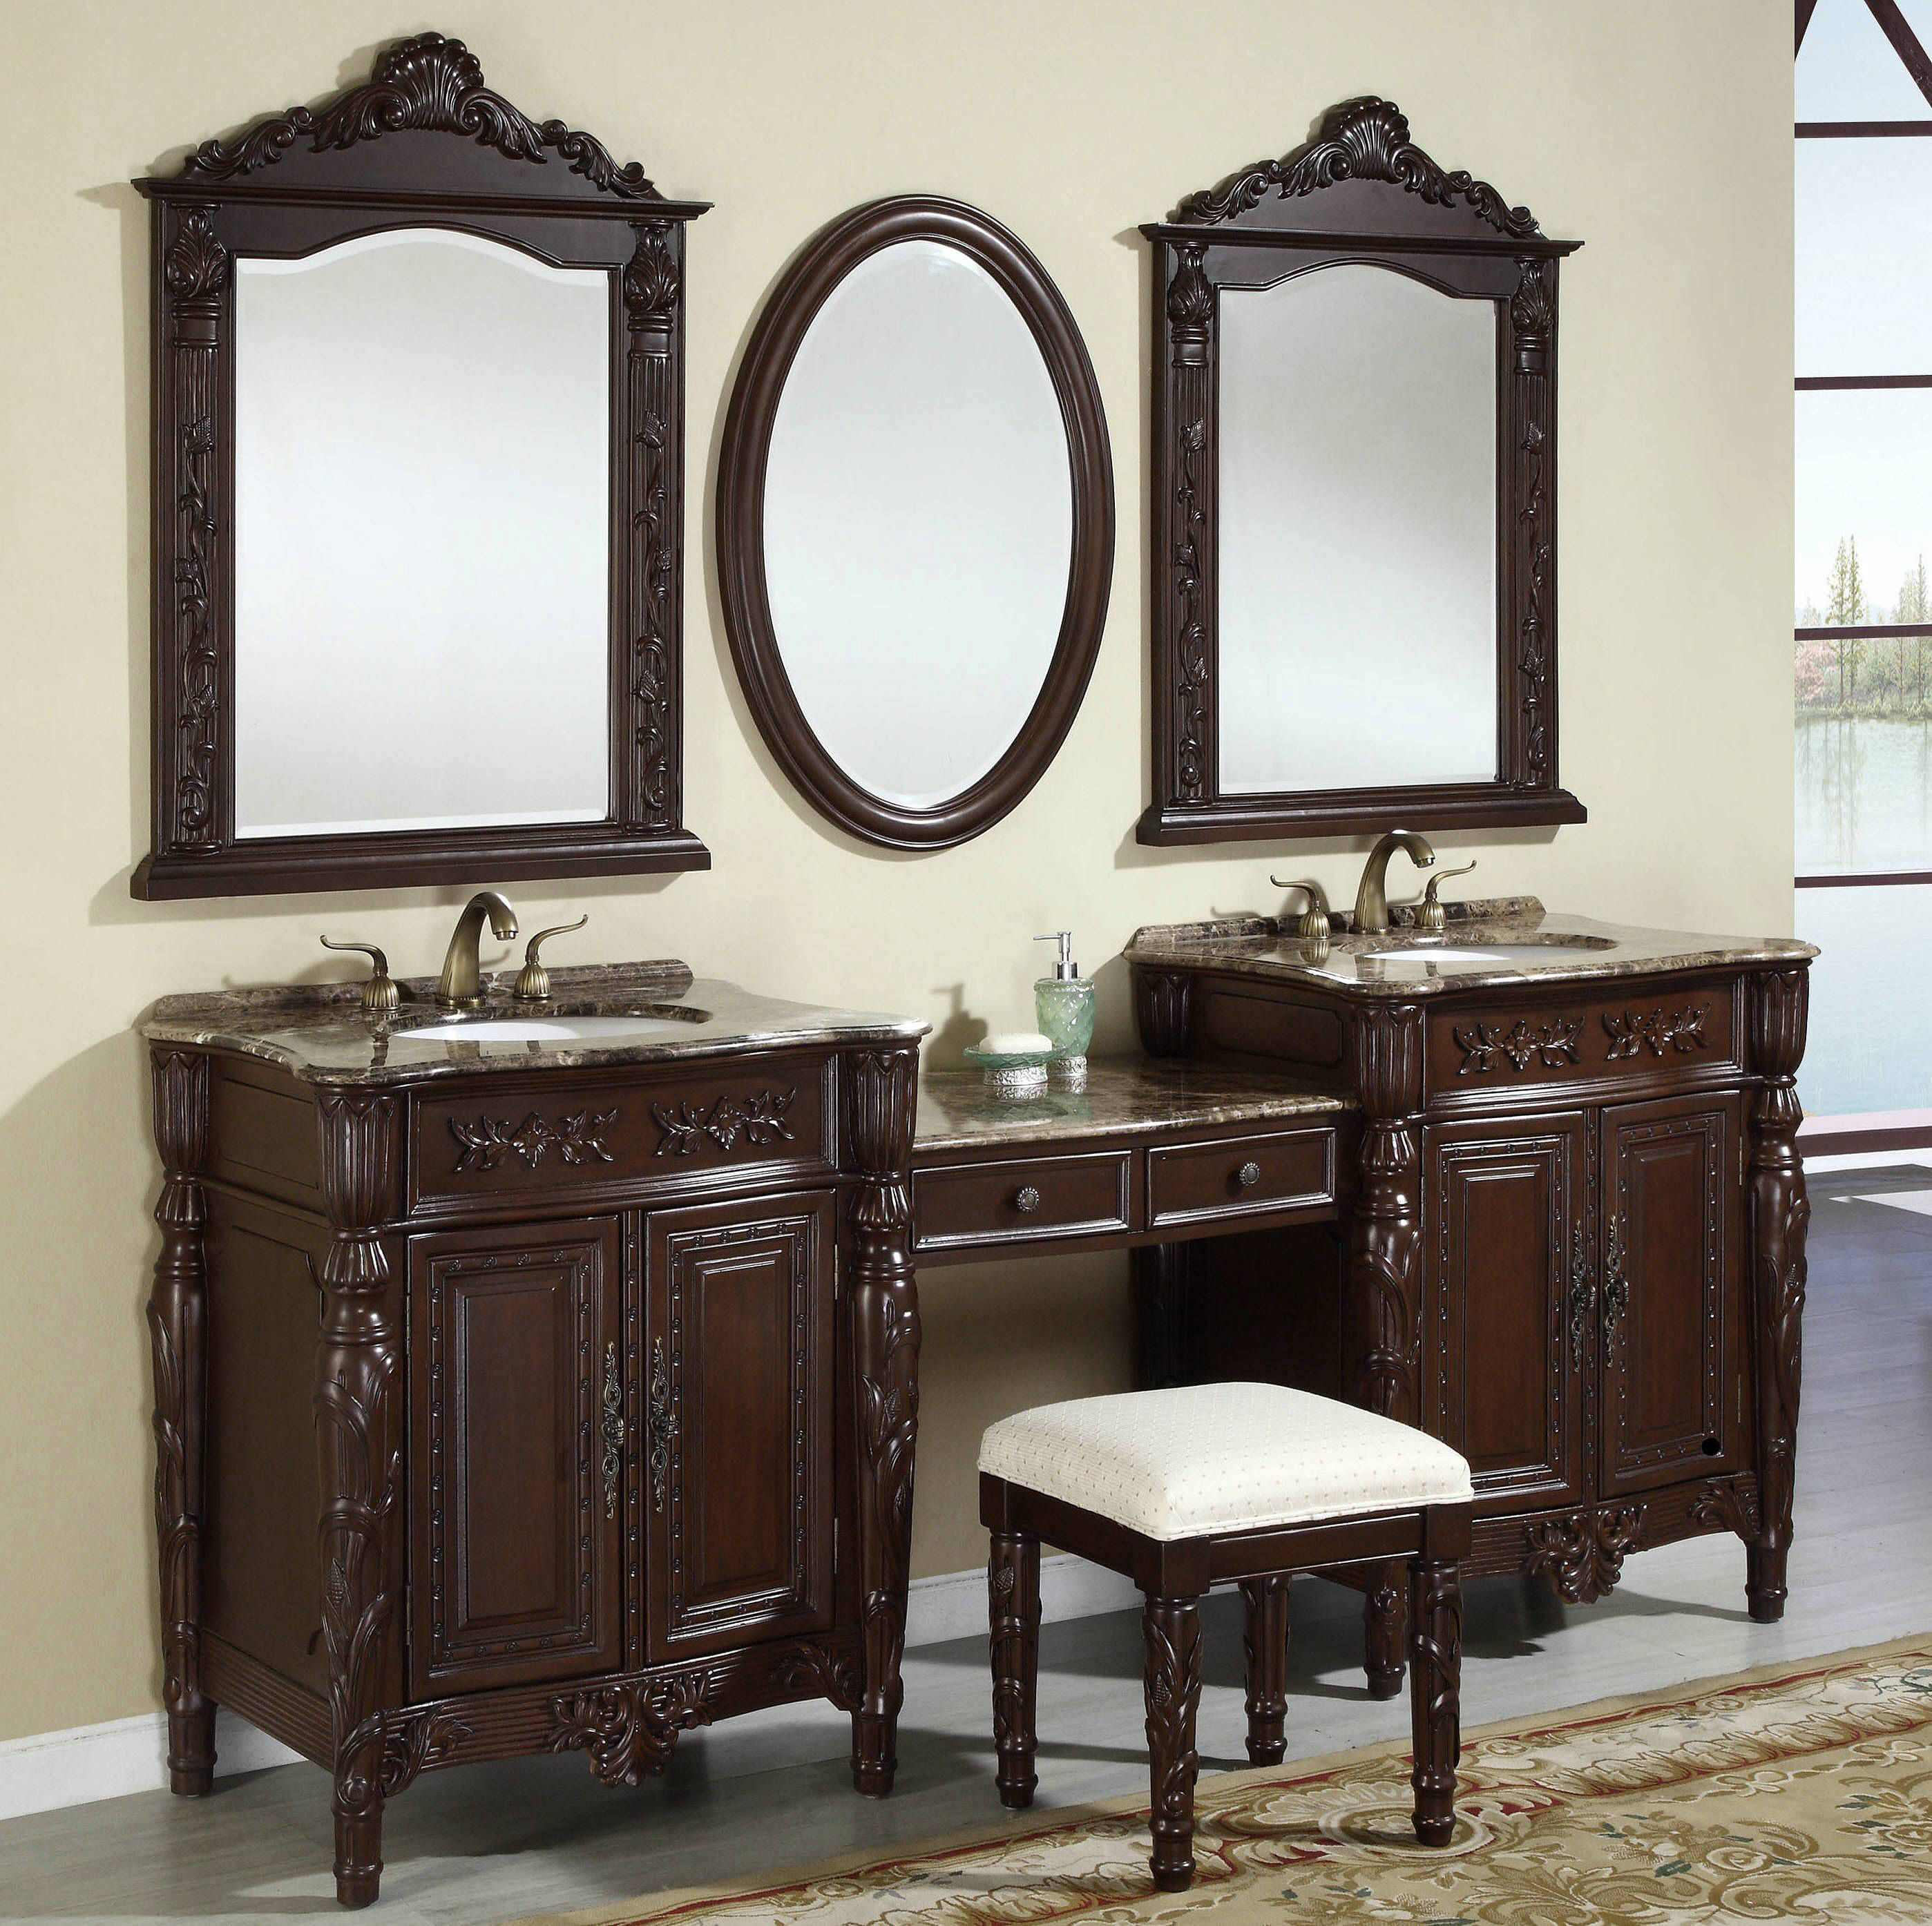 Classic Elegant Bathroom Flowers Roses Pearls: Bathroom Vanities : Classic Wood Vanity Stools For Elegant